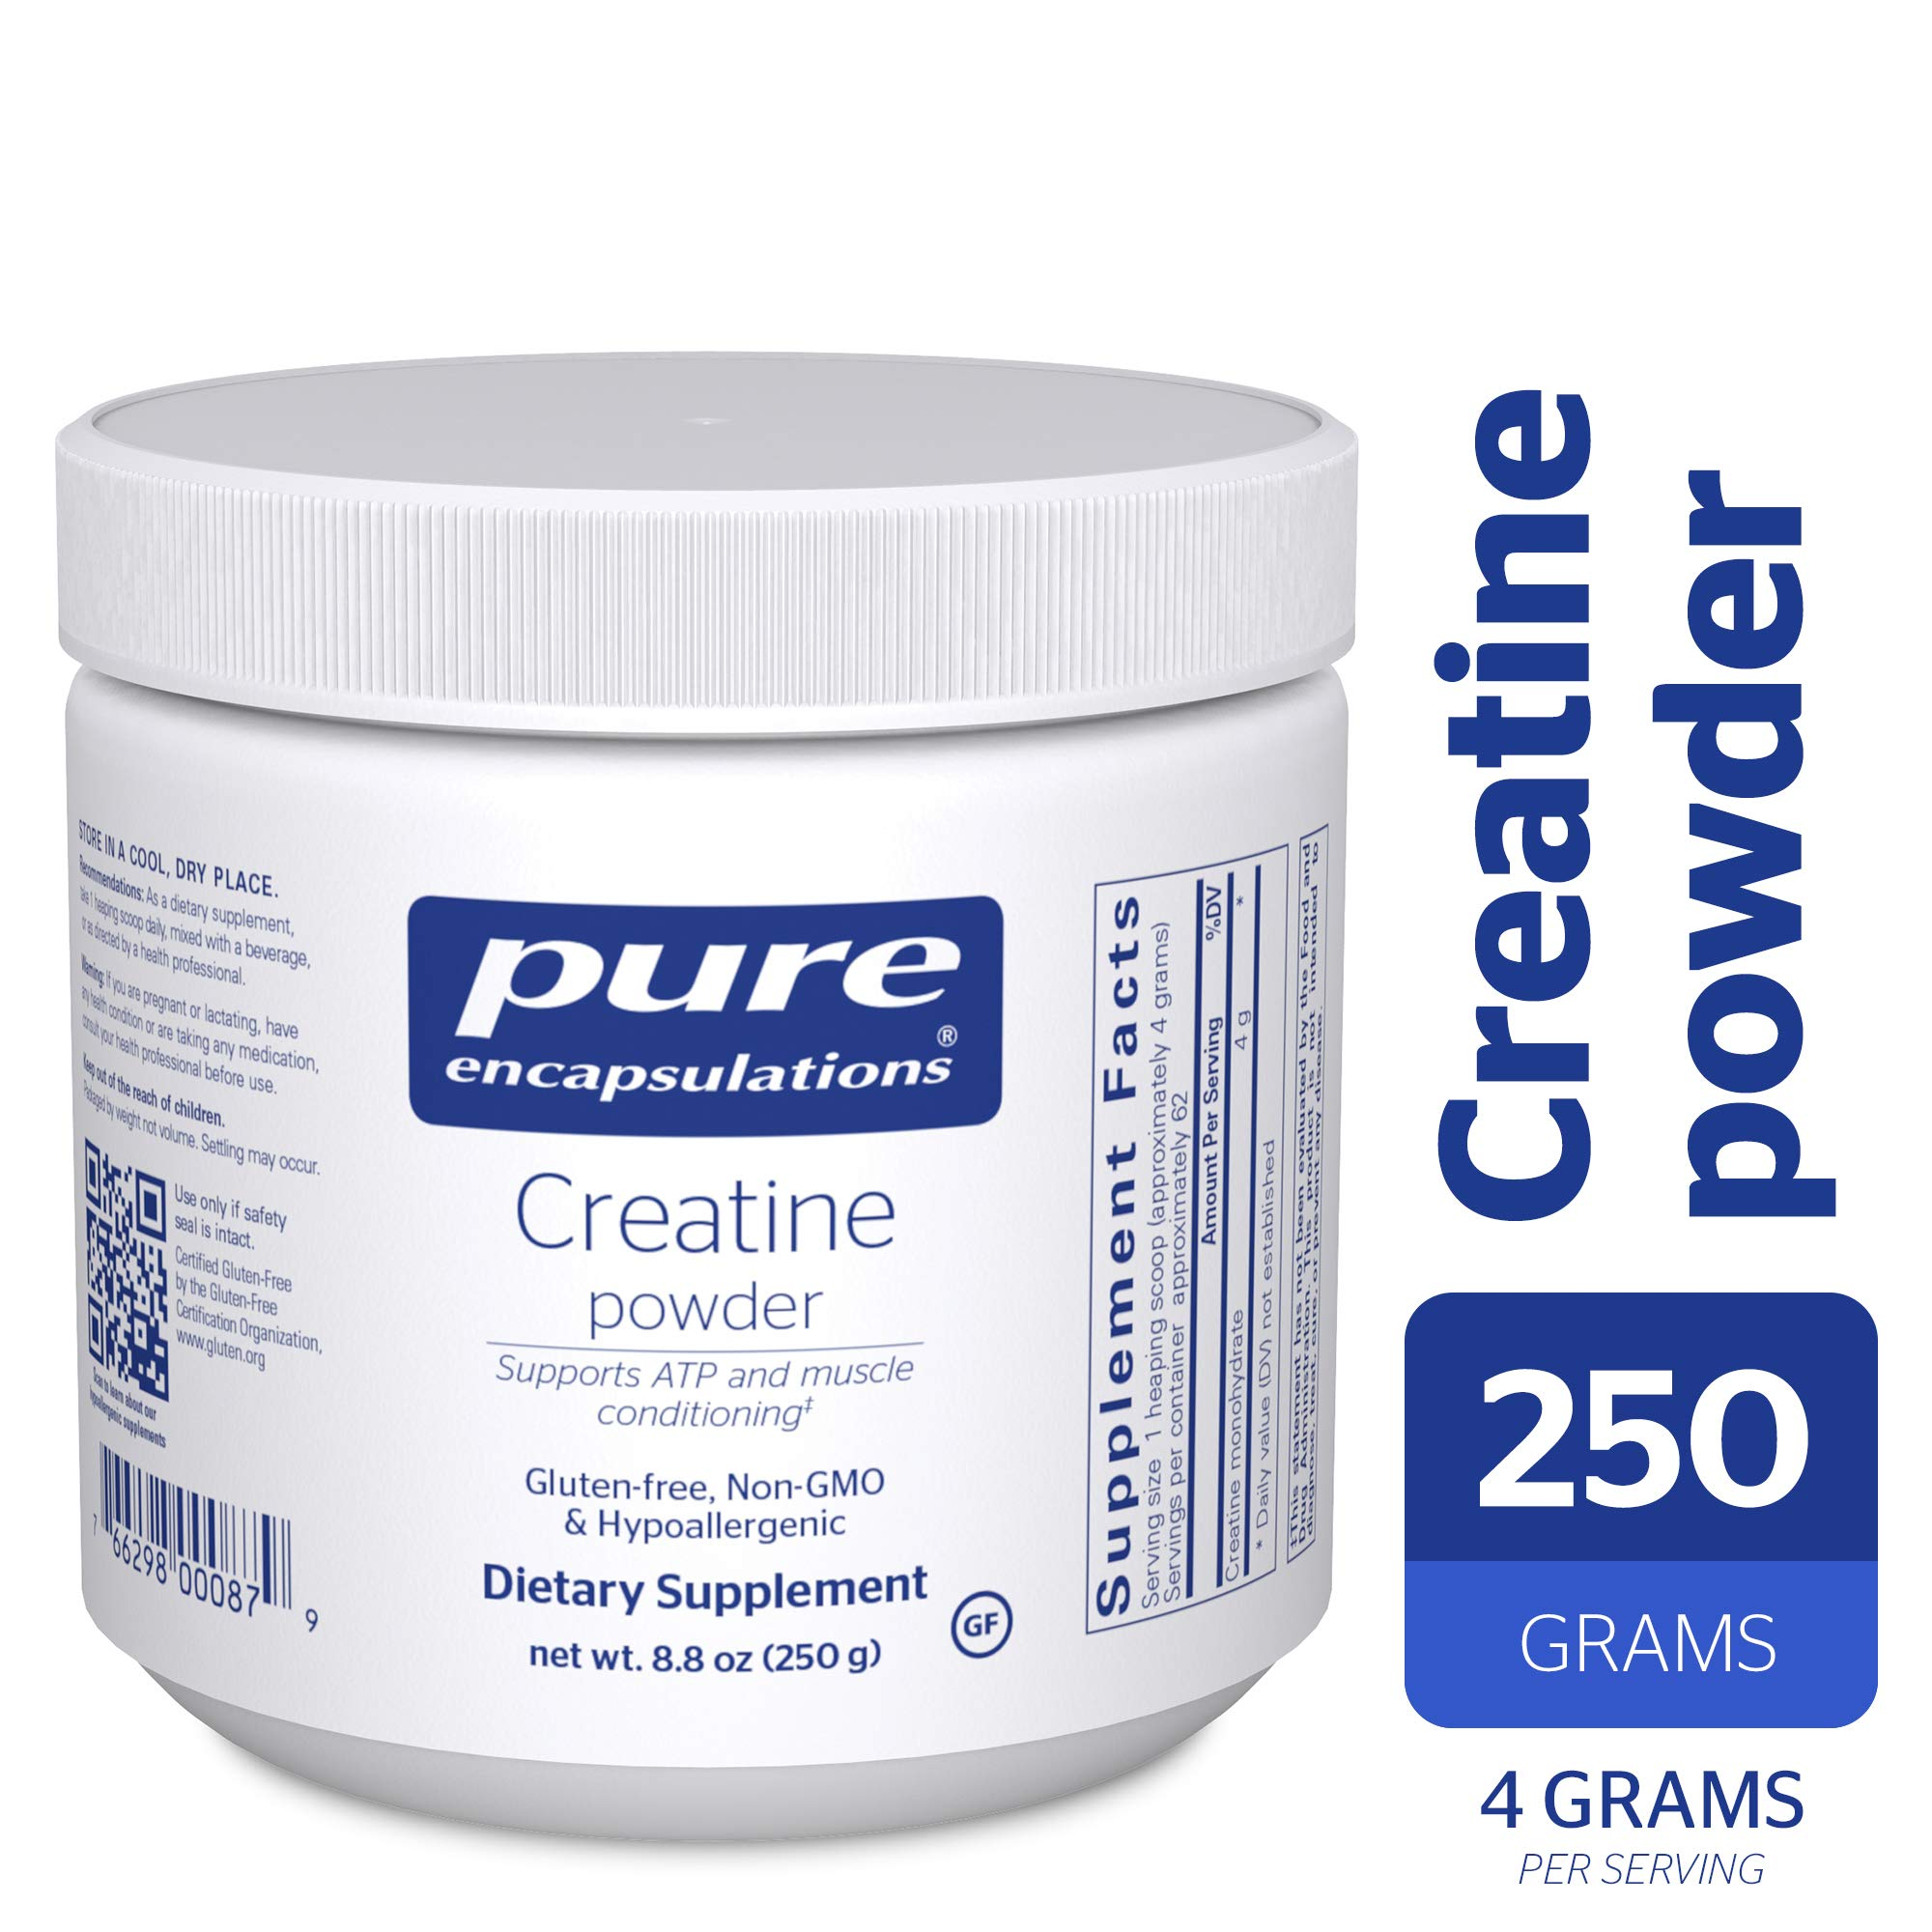 Pure Encapsulations - Creatine Powder - Hypoallergenic Strength and Conditioning Support Formula for Athletes* - 250 Grams by Pure Encapsulations